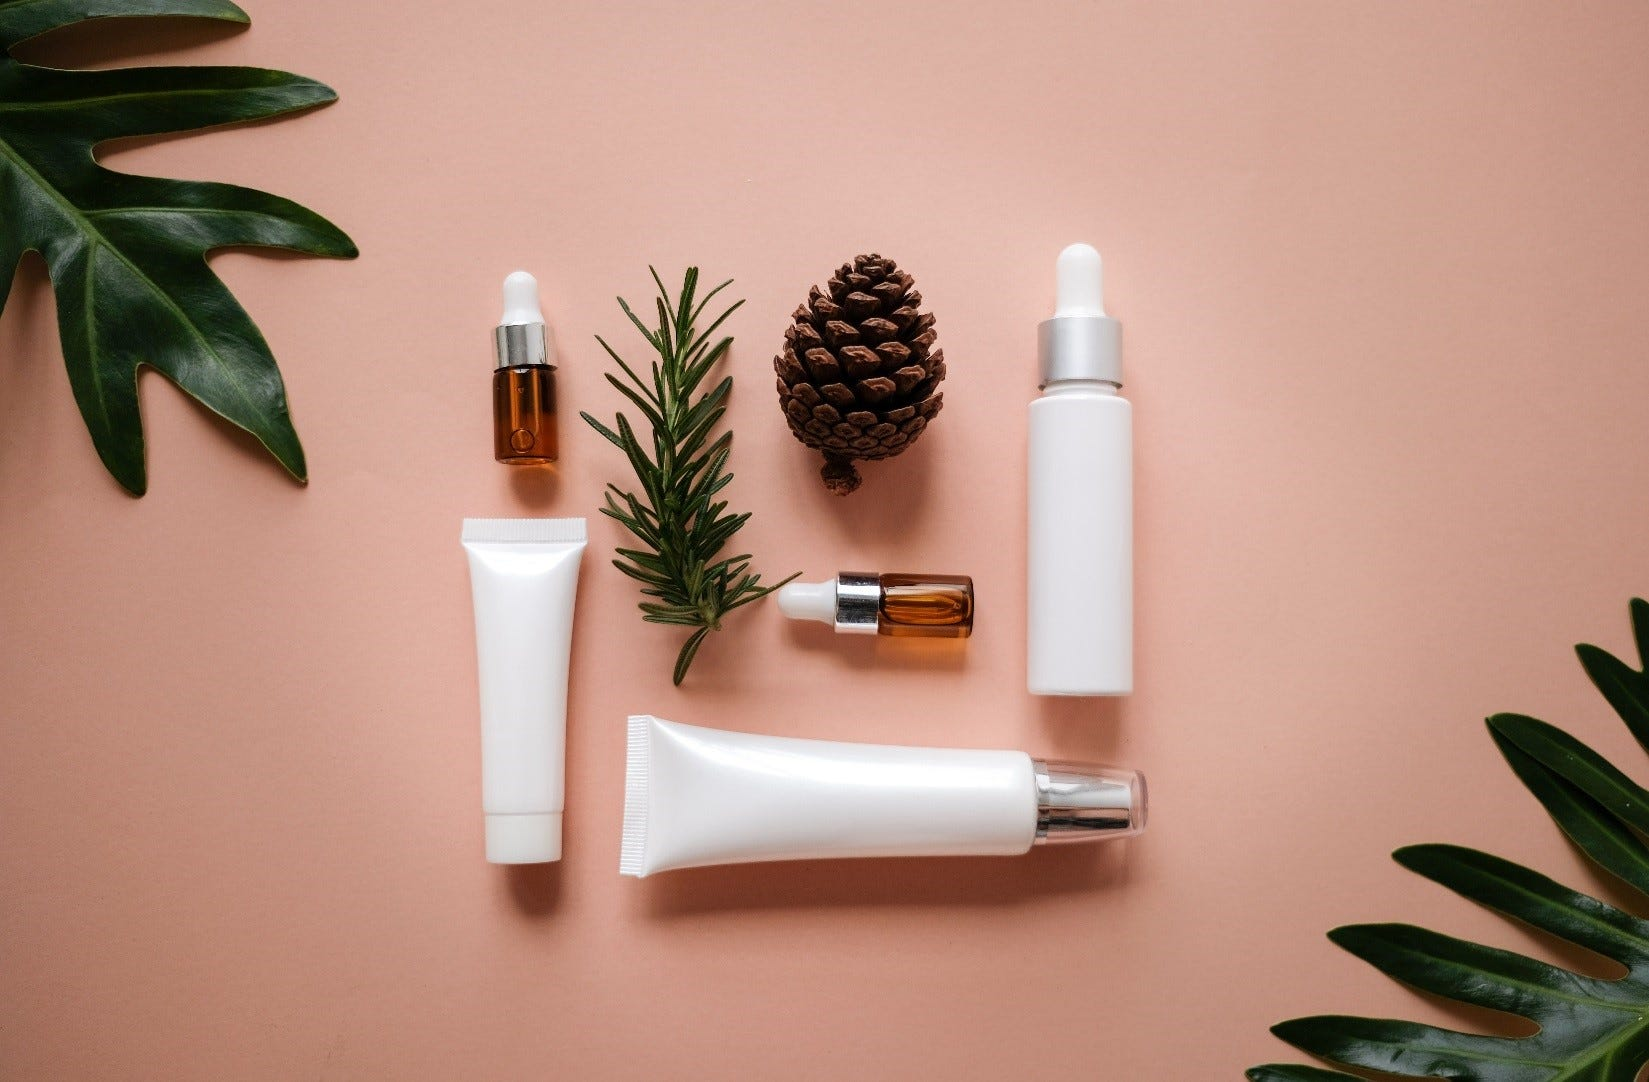 Unbranded skincare products and a pinecone